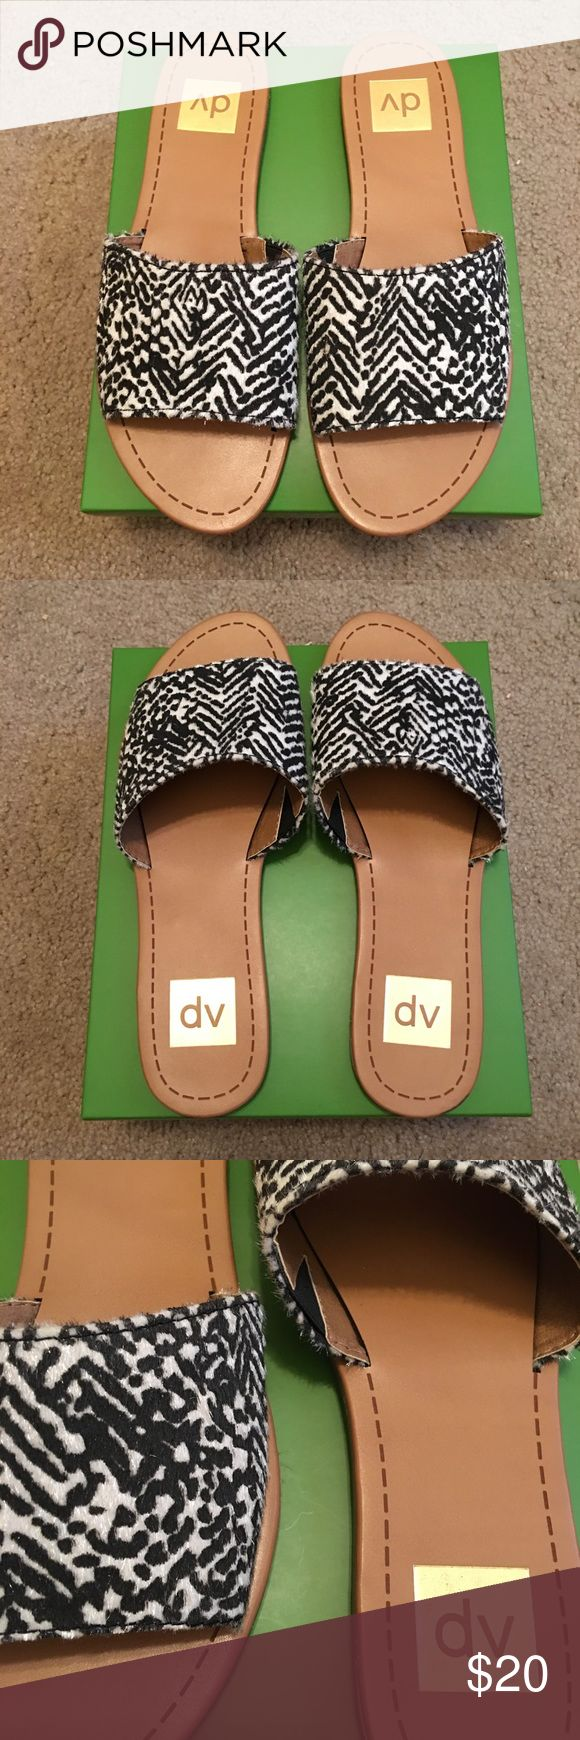 Black and White Print DV Slides Brand new black and white DV slide sandals. Black and white printed faux pony hair. Brand new without tags. Super cute for spring and summer. Size 8. DV by Dolce Vita Shoes Sandals